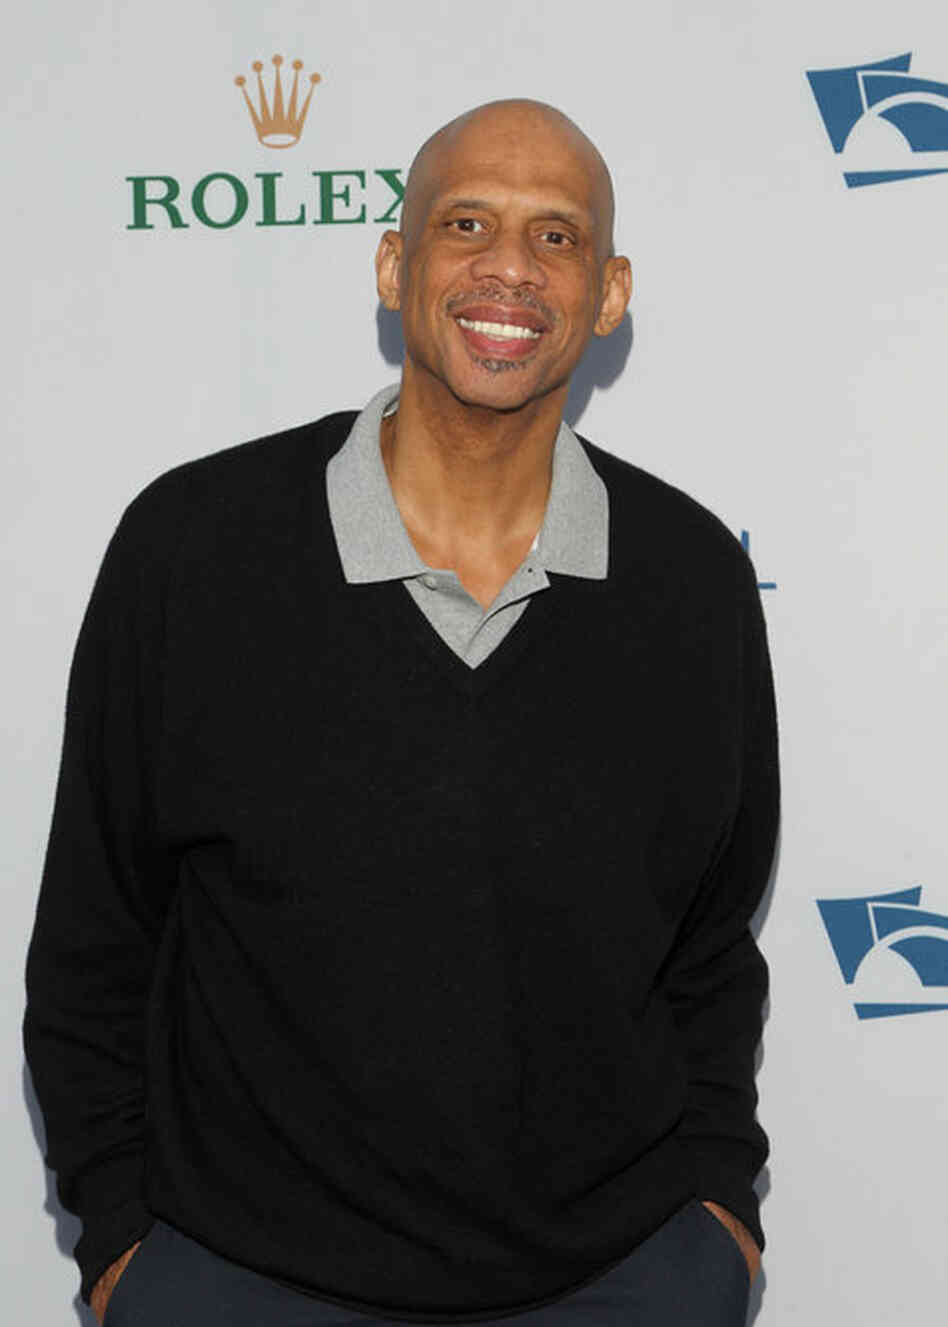 The Los Angeles Philharmonic's opening night gala at Walt Disney Concert Hall on Sept. 27 drew many celebrities, including Kareem Abdul-Jabar.